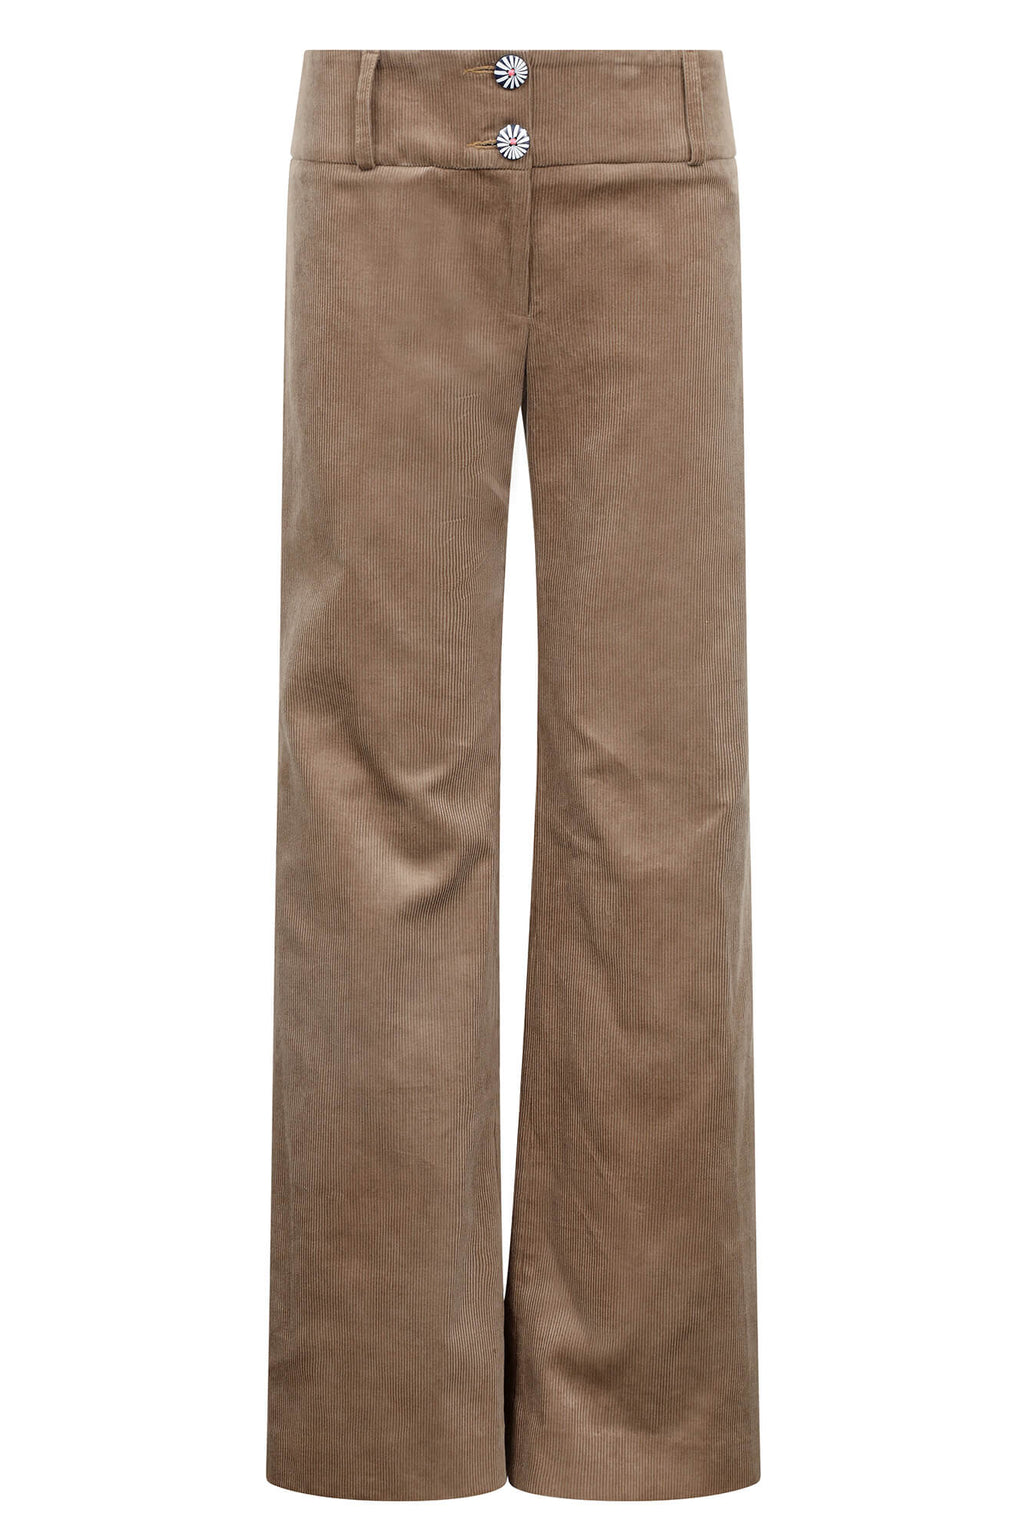 Women's cord trousers sand